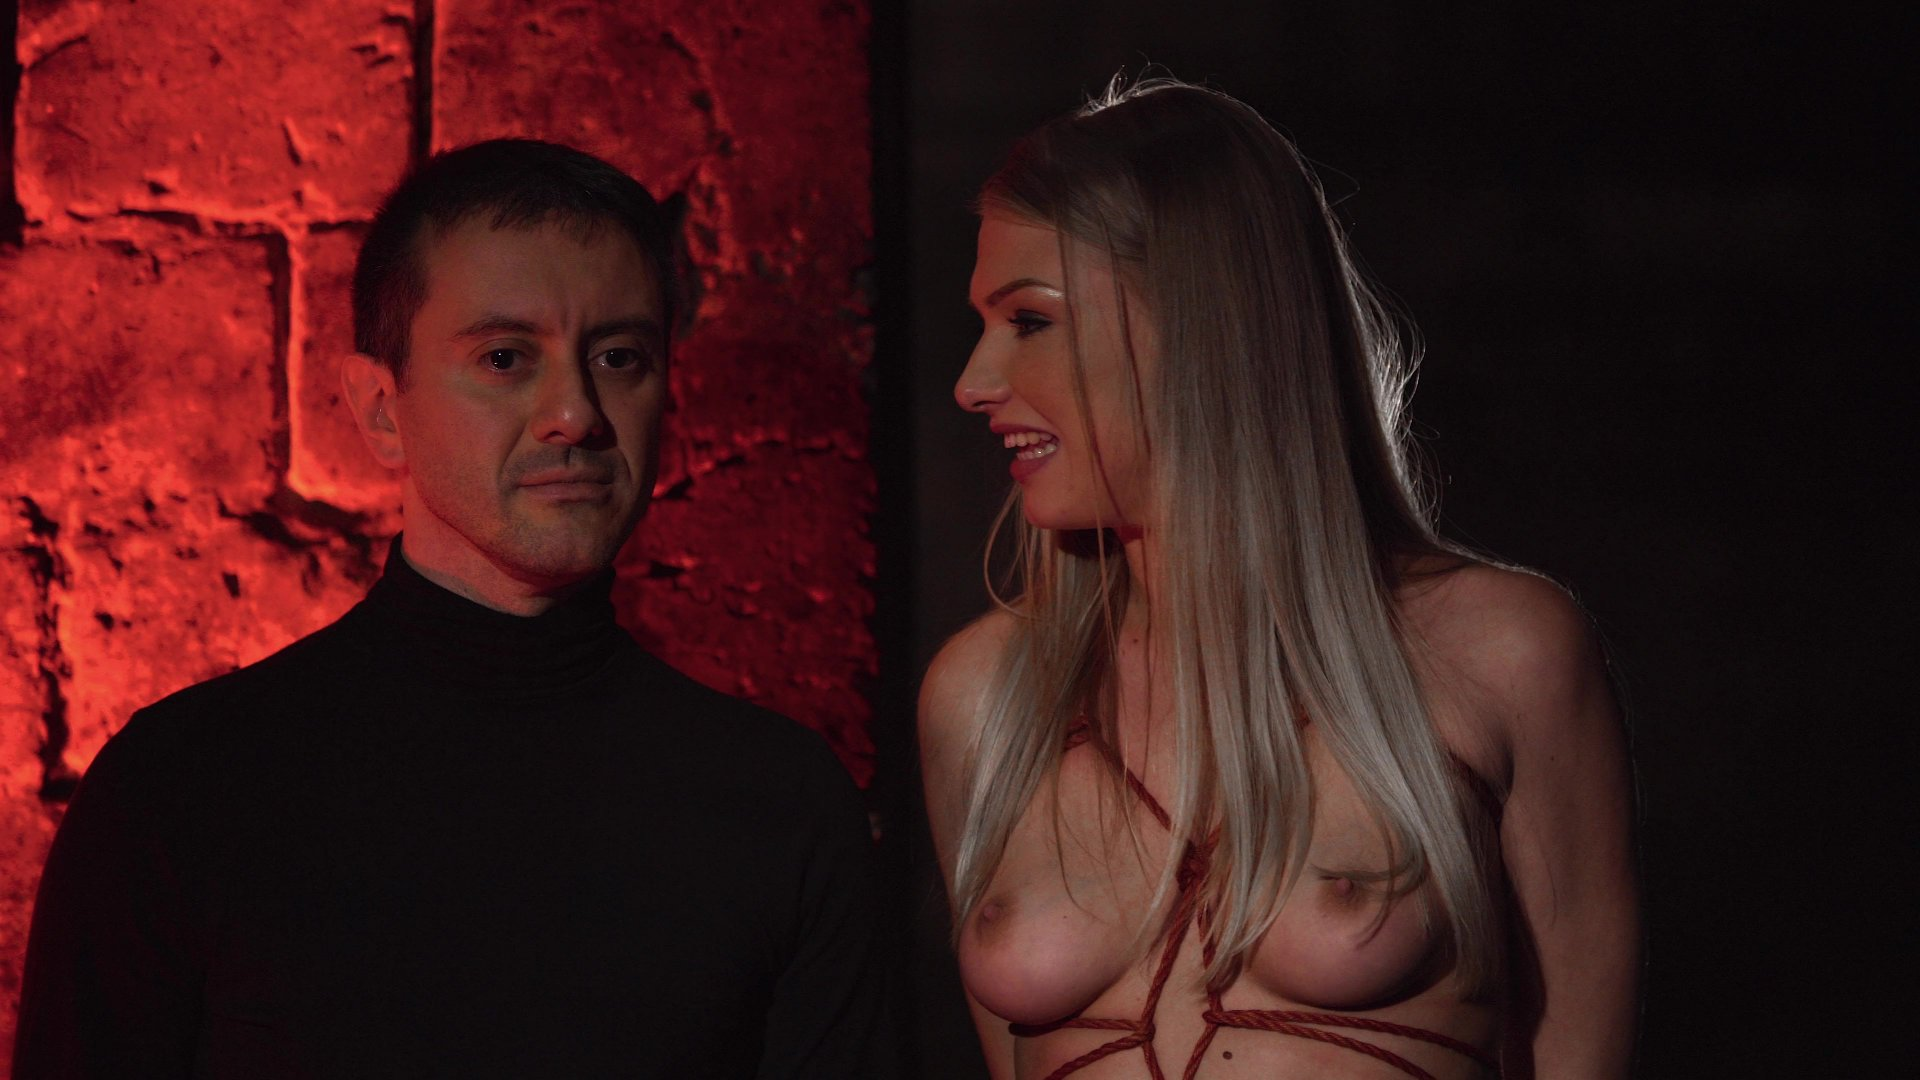 Preview image 8 out of 18  of scene 1 from Claire Desires Of Submission